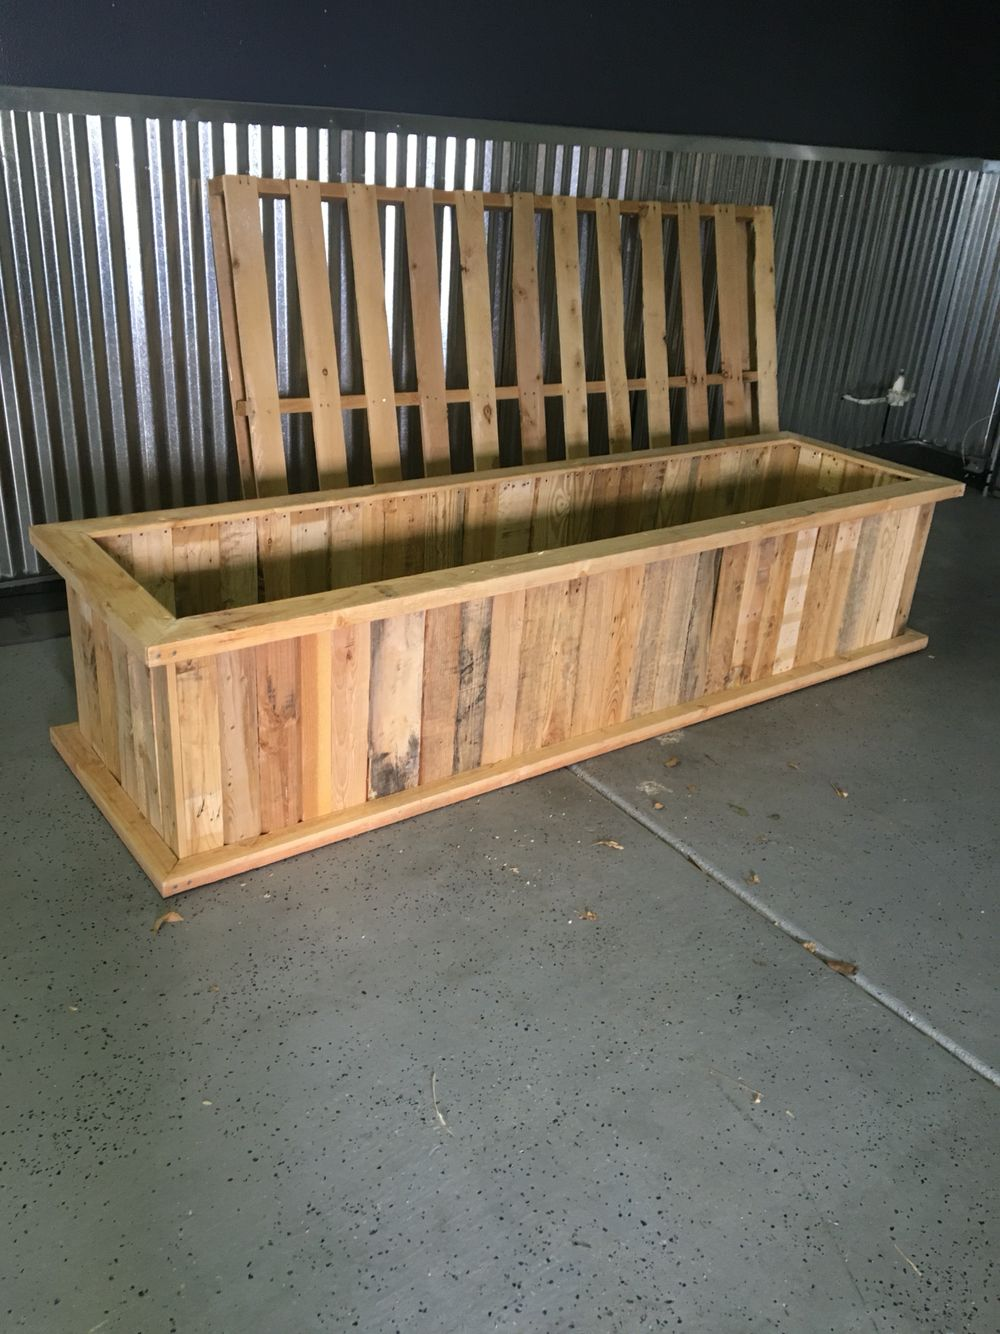 planter box made from pallets do it yourself wood projects ideas planter boxes planters pallet. Black Bedroom Furniture Sets. Home Design Ideas